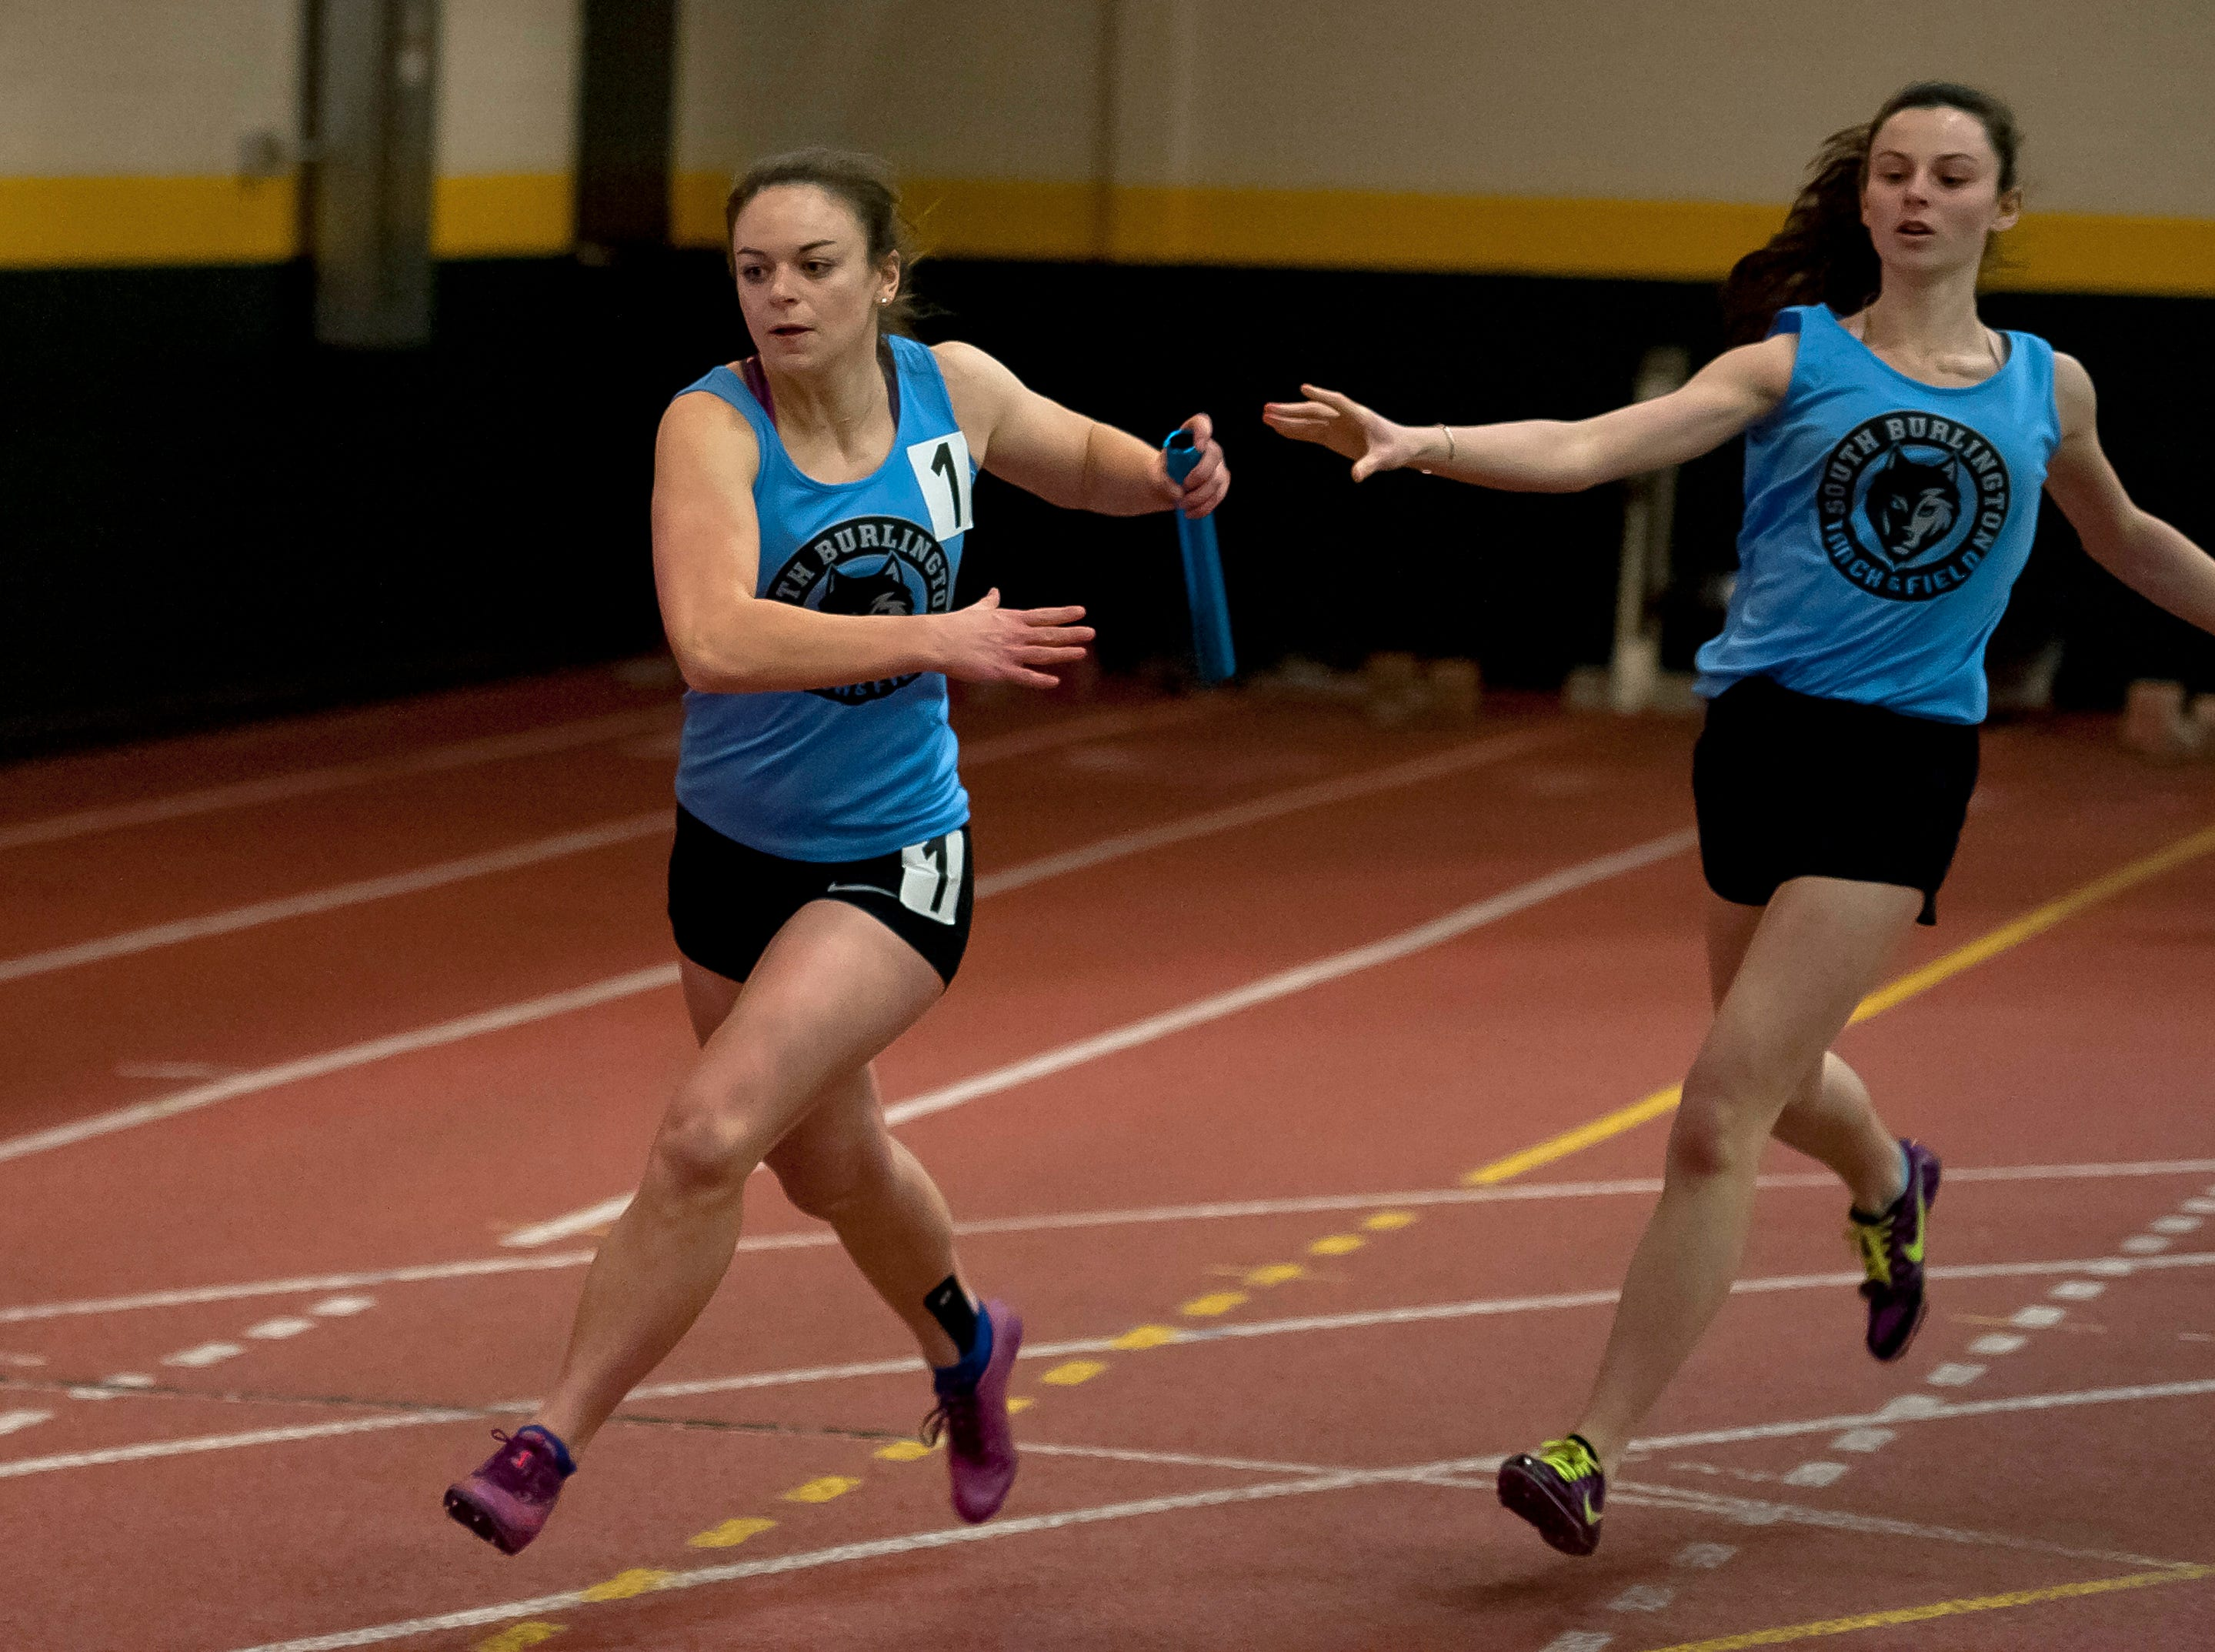 South Burlington's Cora Kakalec , left, takes the handoff from Sophia Thomas in the girls 4x200 meter relay at the high school indoor track state championships at the University of Vermont on Saturday.